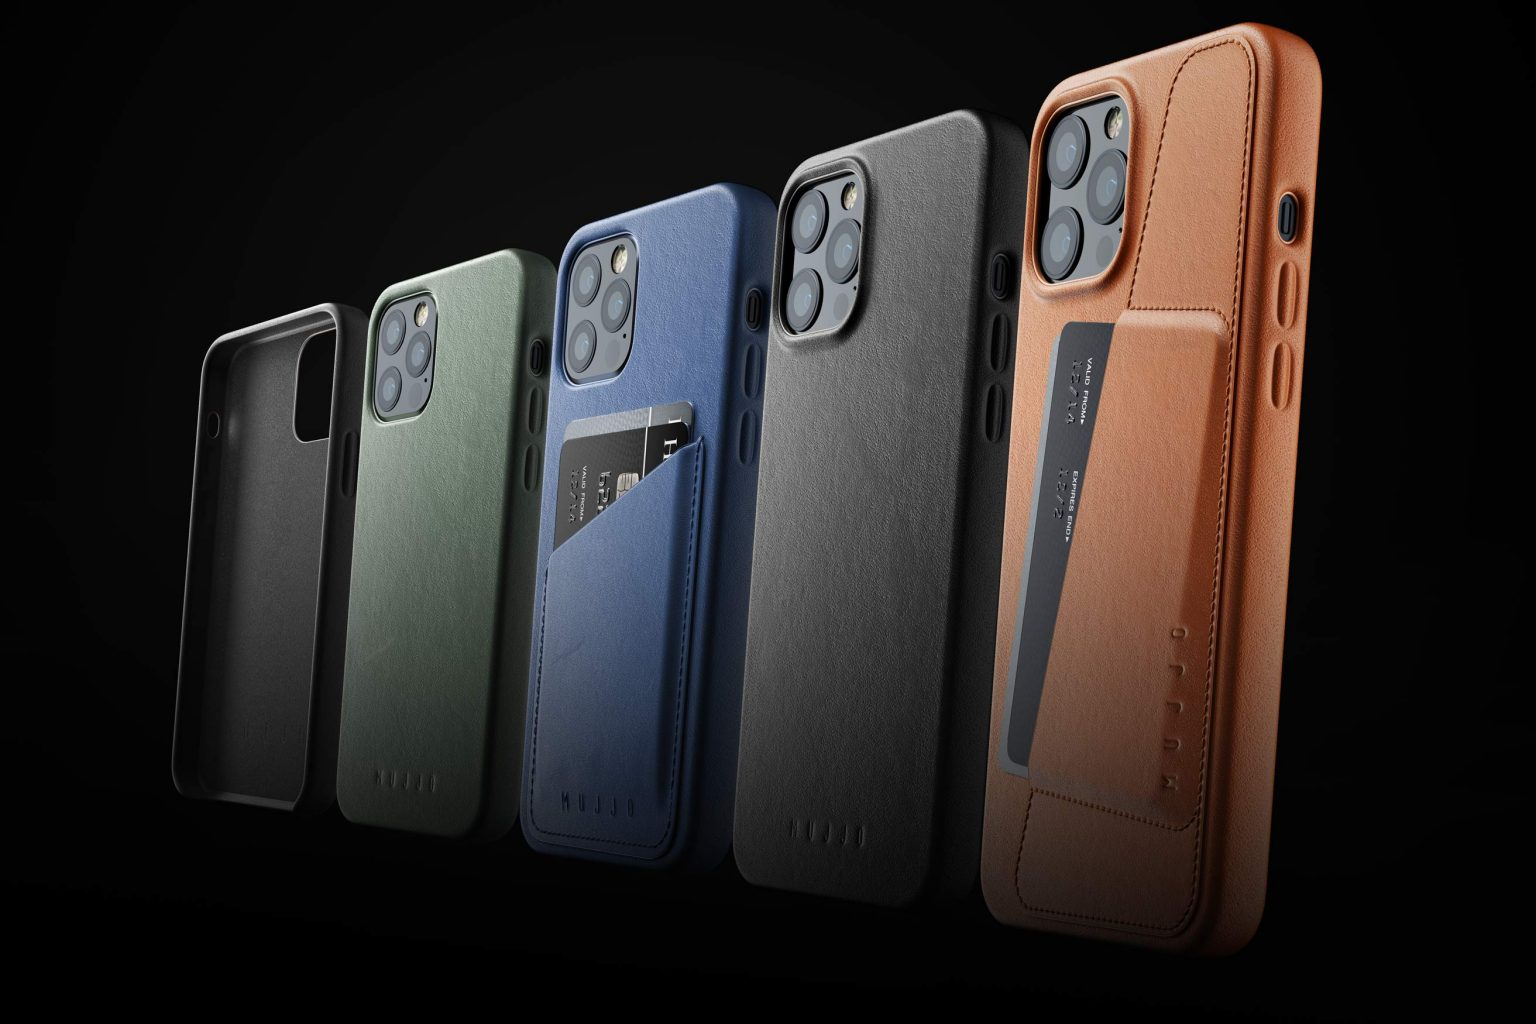 Mujjo iPhone case giveaway: Mujjo cases are some of the finest leather cases to ever cradle an iPhone.